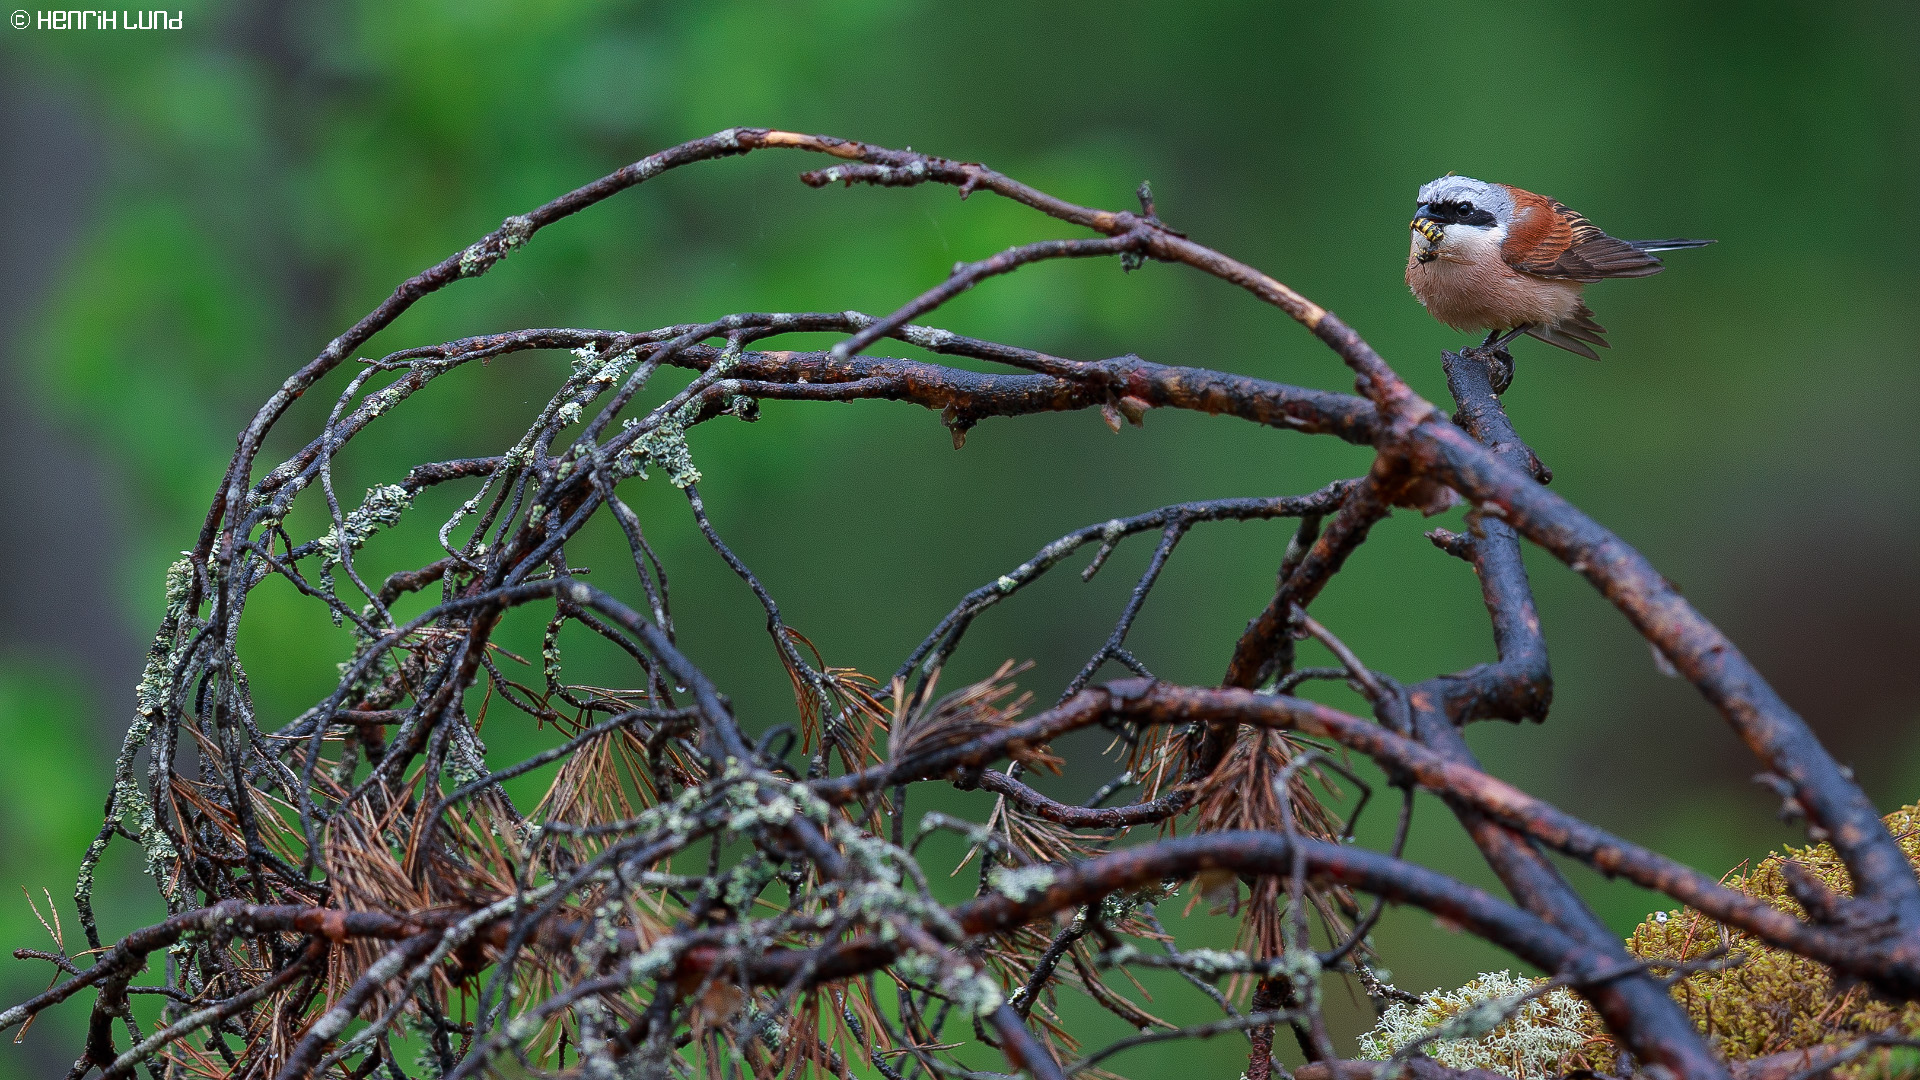 A red-backed shrike with a wasp as a prey. Lappträsk, Finland, May 2014.